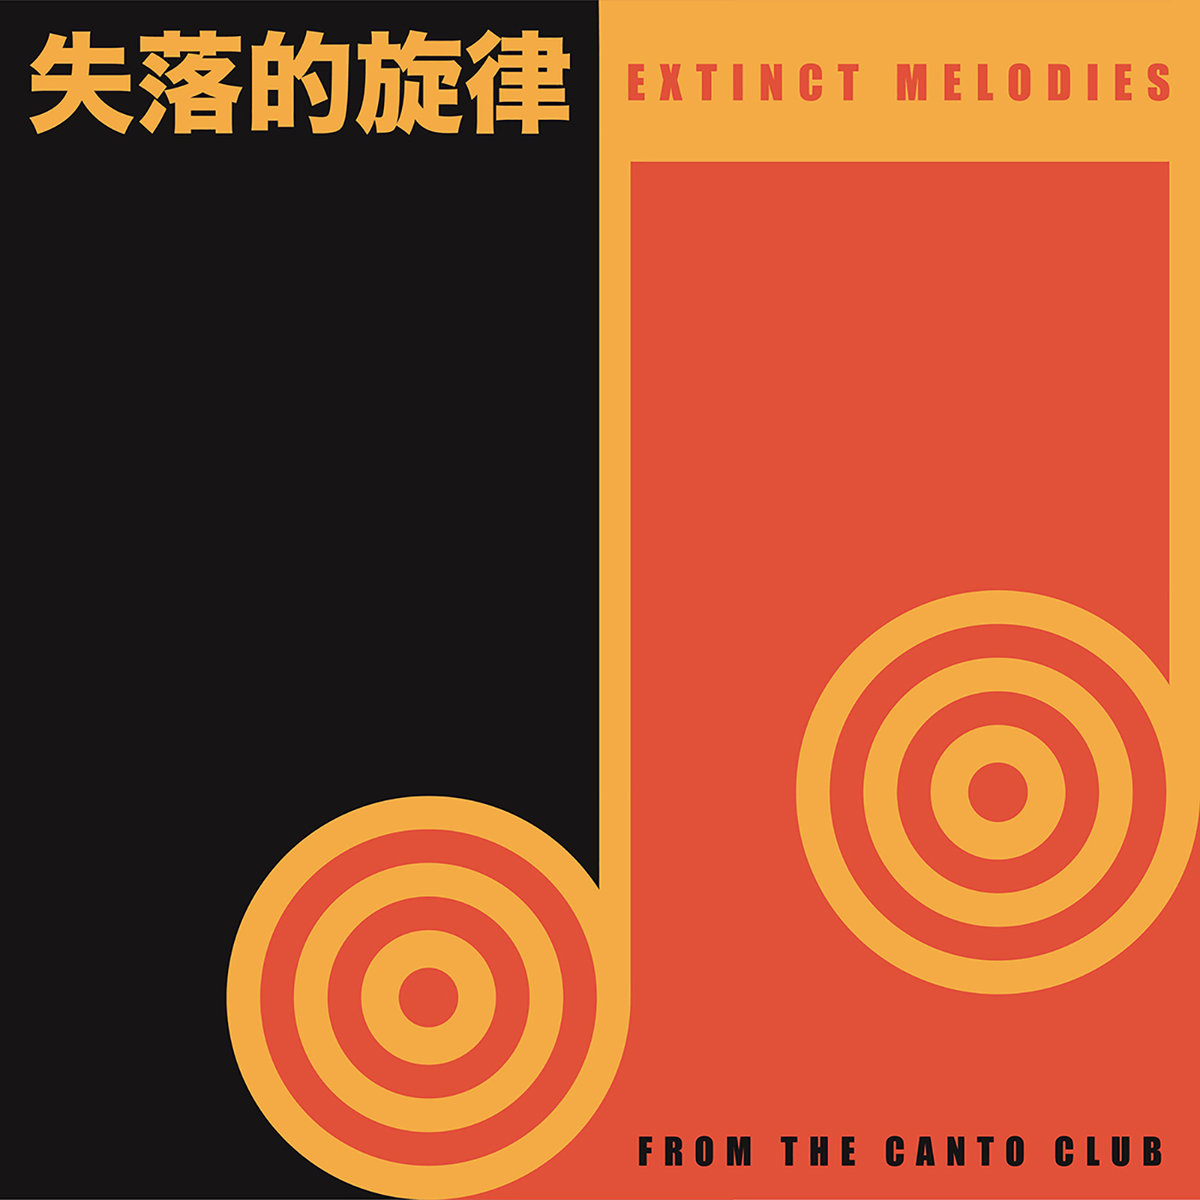 202002/Extinct-Canto-Melodies-China-Album.jpg